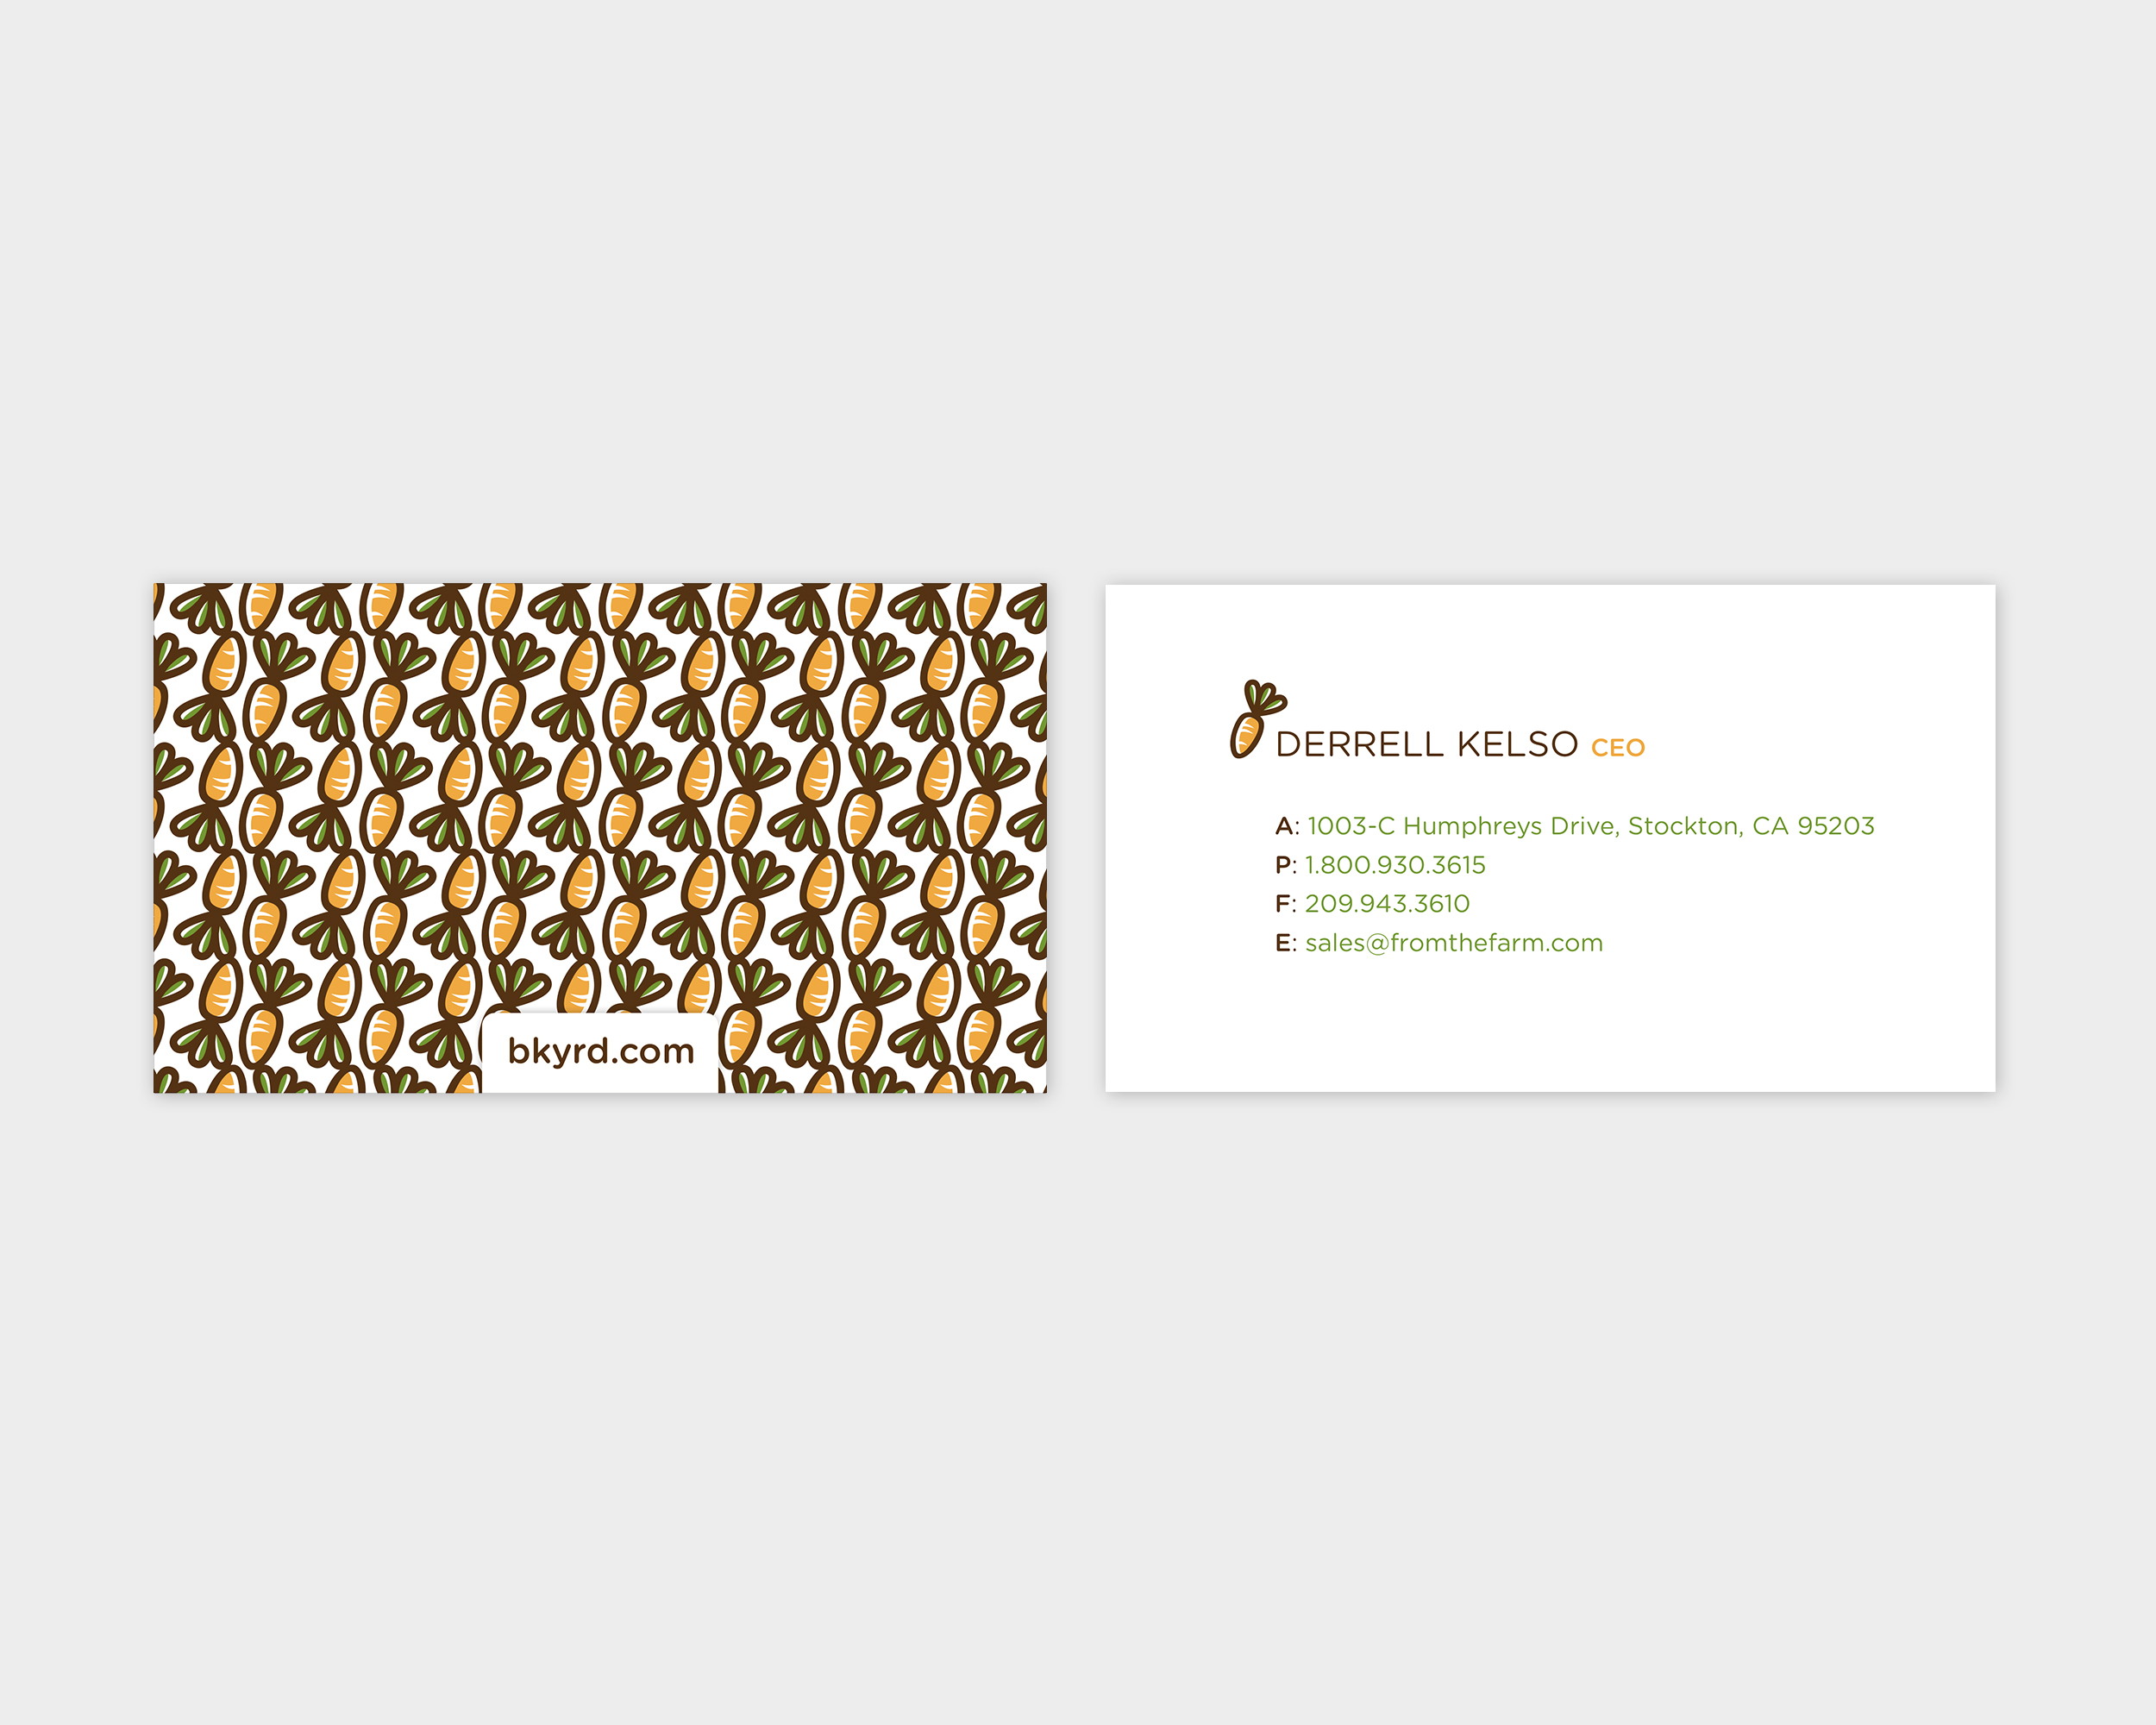 bkyrd Business Card Design